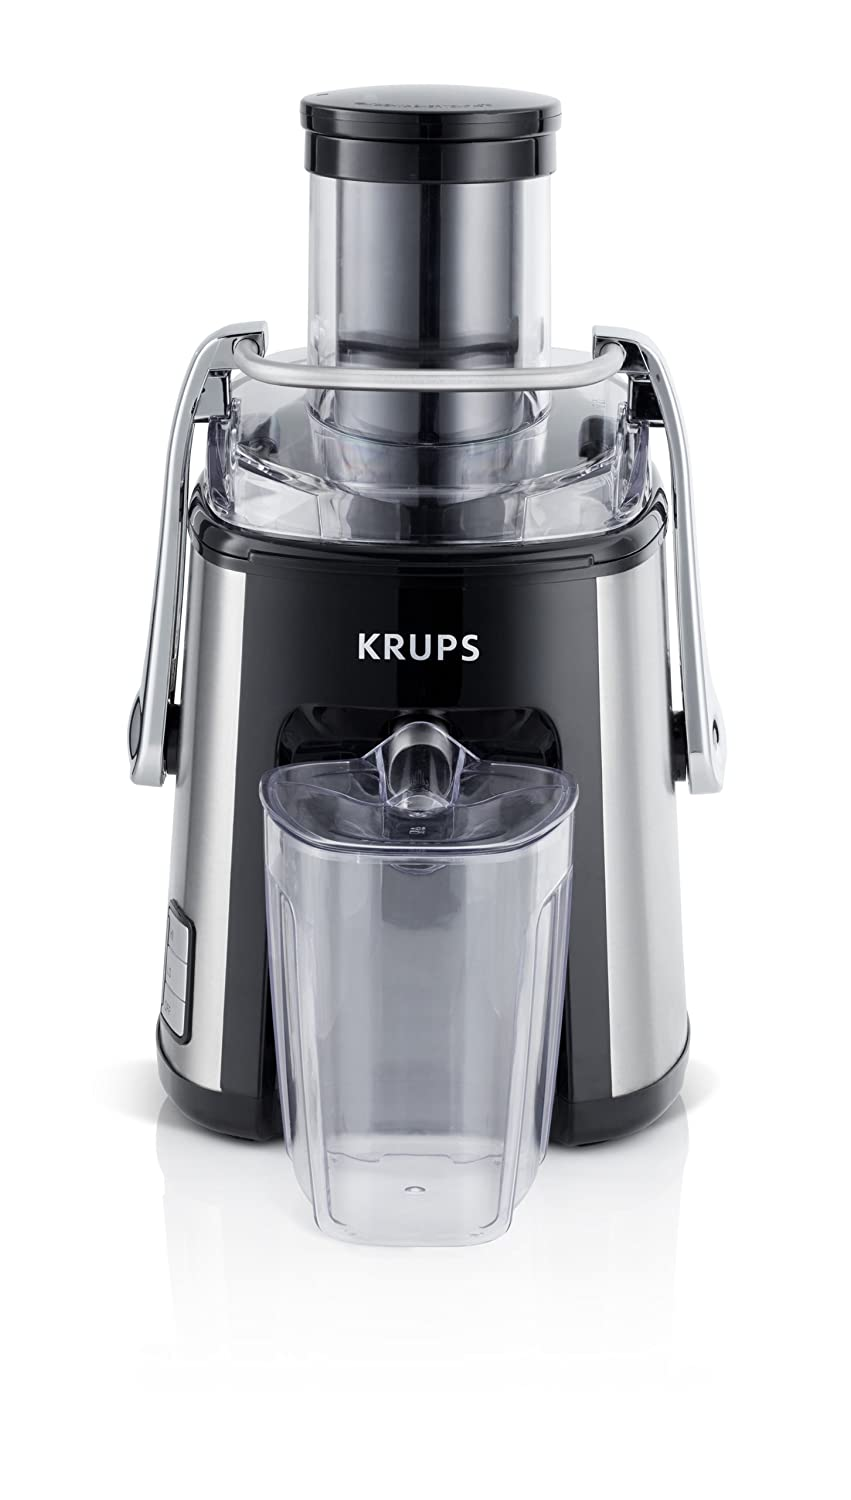 KRUPS ZY501D50 Stainless Steel Juice Extractor with Variable Speed Settings, Black Groupe SEB 1500831800